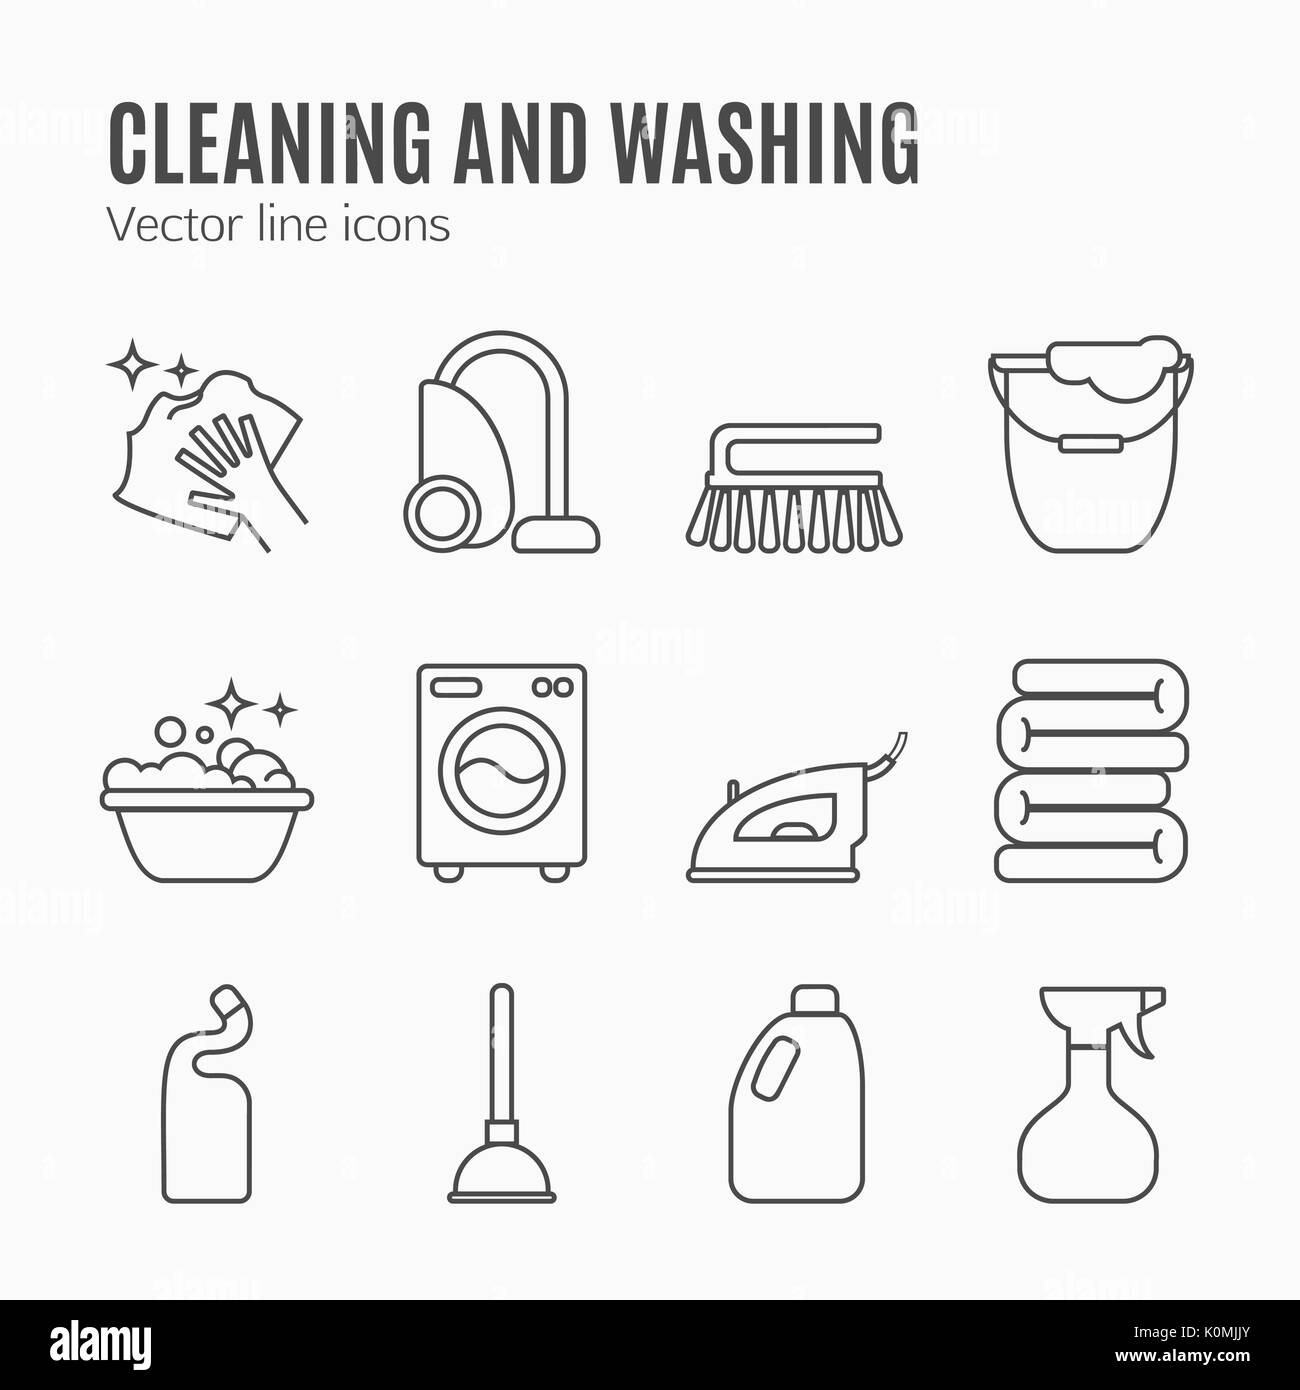 Cleaning, wash line icons. Washing machine, sponge, mop, iron, vacuum cleaner, shovel and other clining icon. Order in the house thin linear signs for cleaning service. - Stock Vector